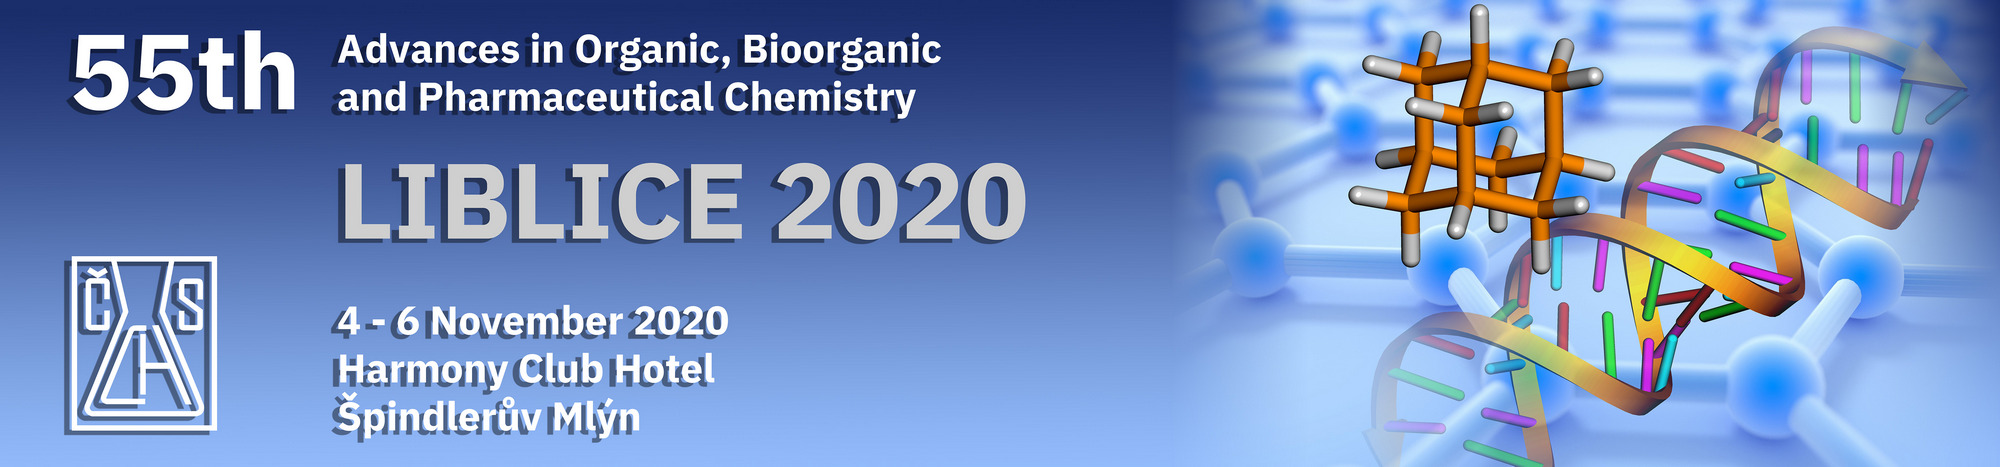 Liblice 2020 – 55th Advances in Organic, Bioorganic and Pharmaceutical Chemistry